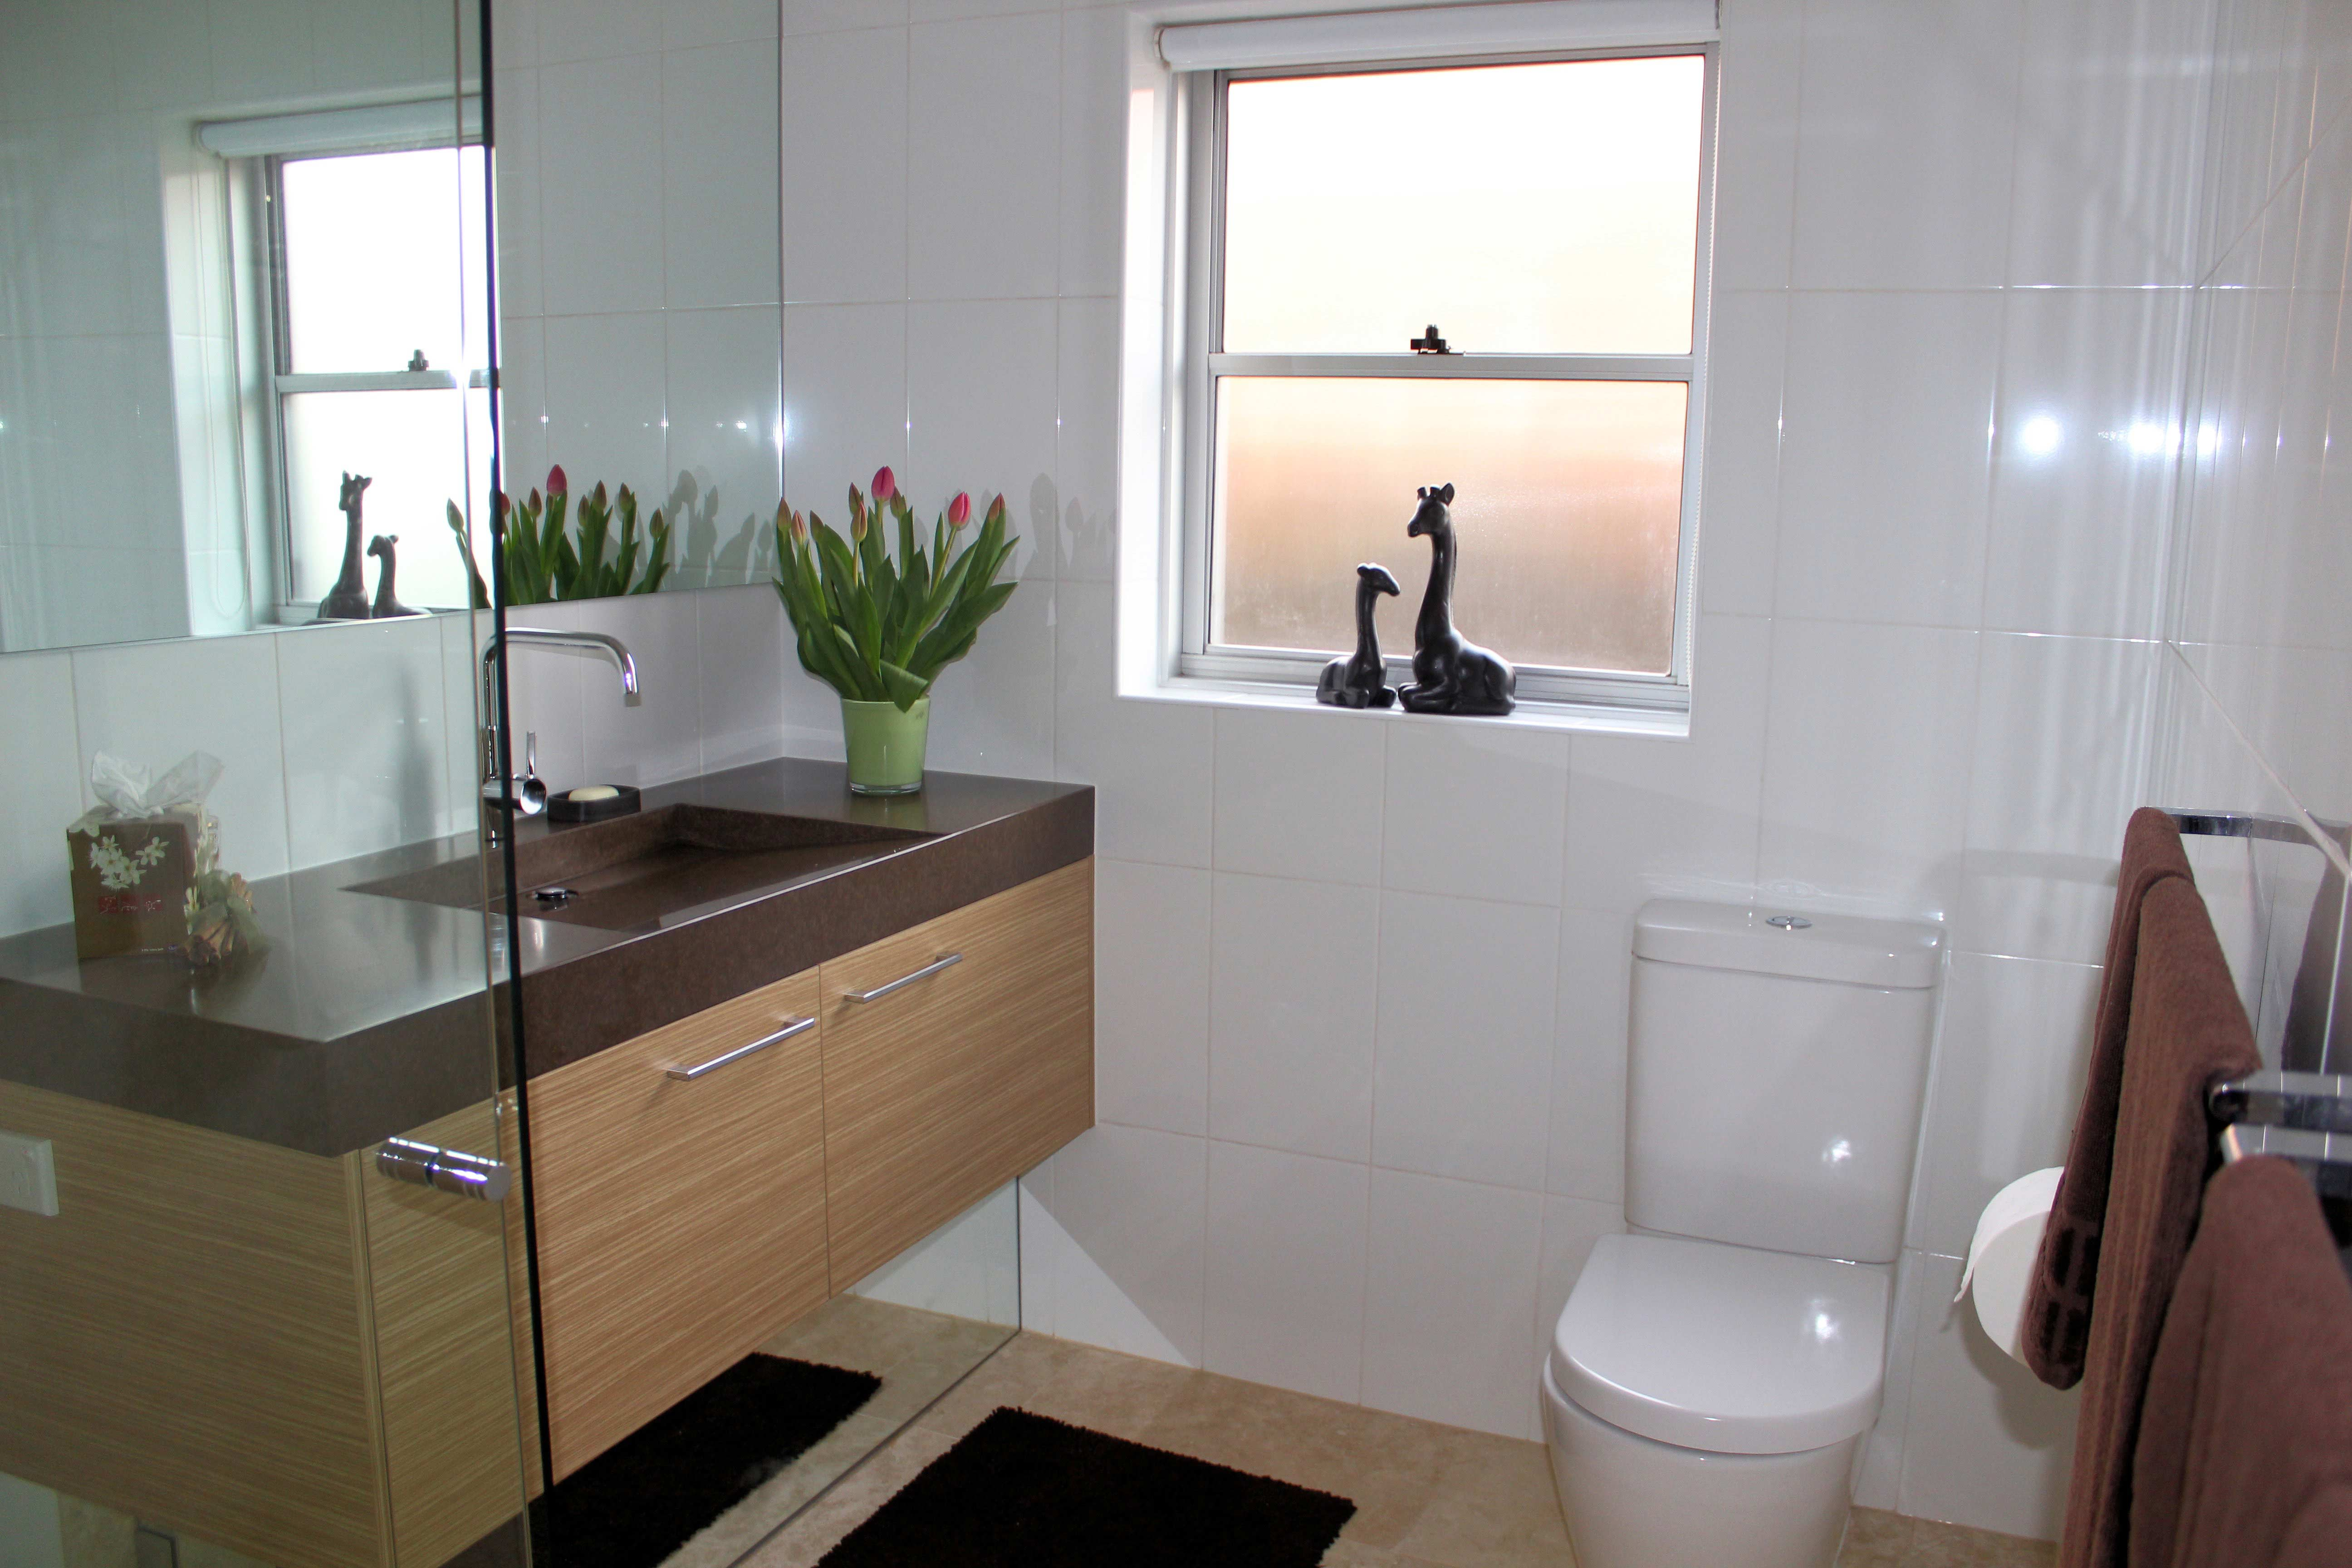 Bathroom Designs Sydney small bathroom renovations/designs sydney, best vanities for